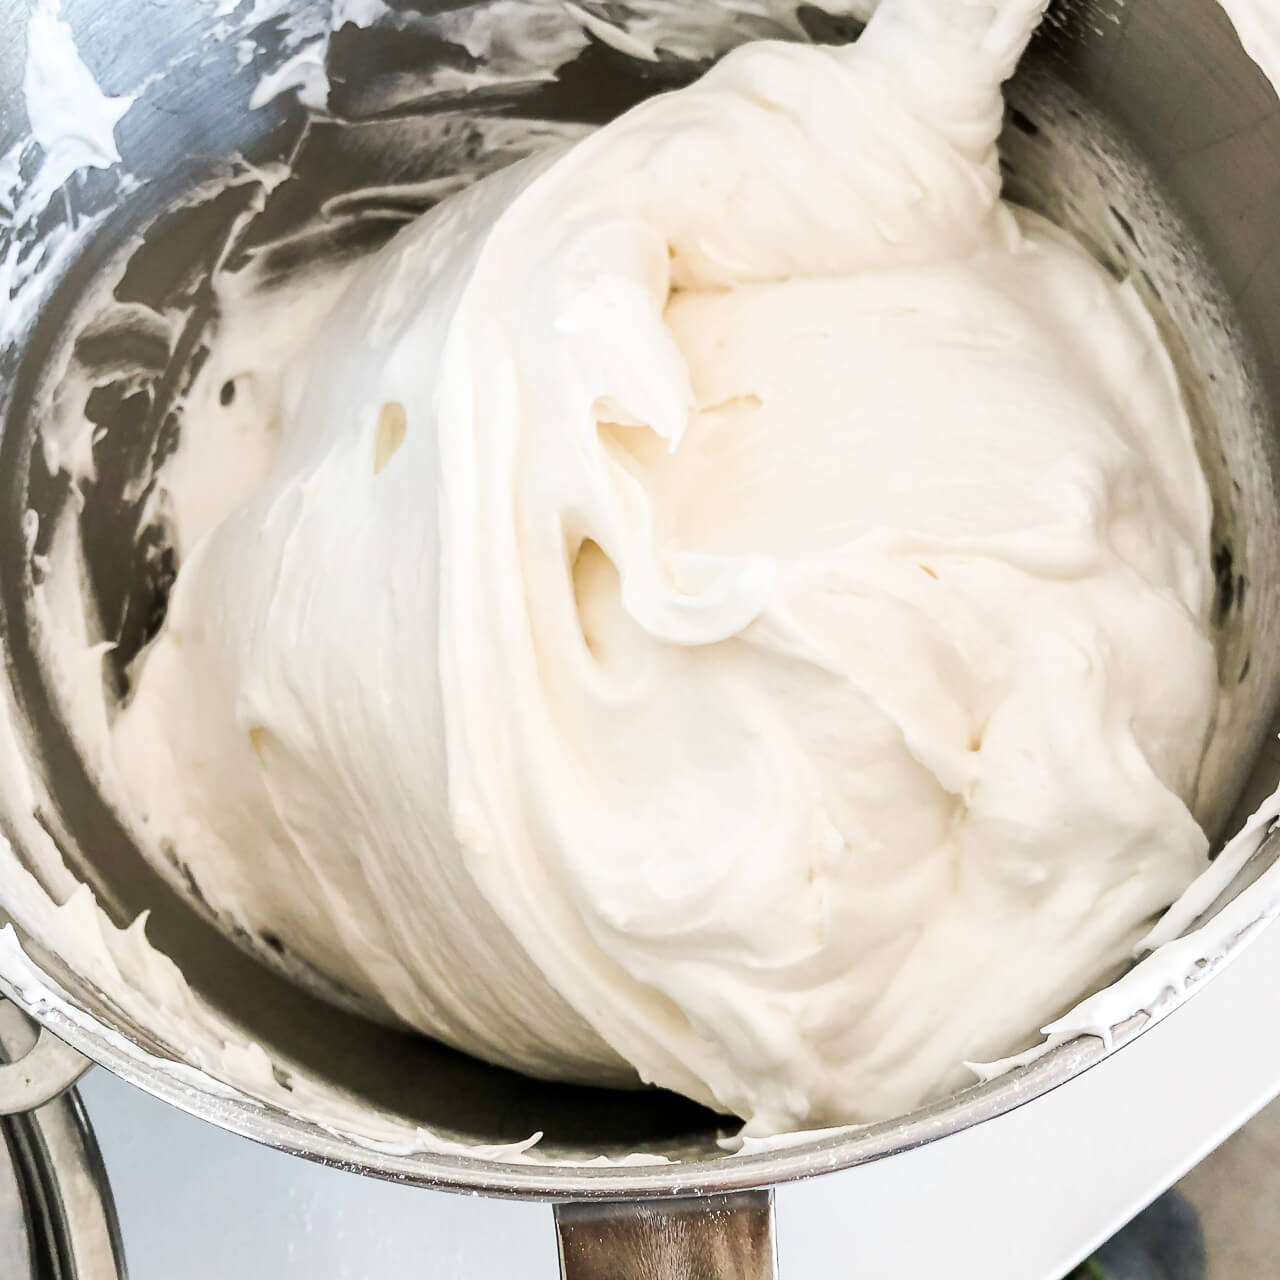 Photo demonstrating folding of whipped egg whites with flour to make angel food cake without deflating the mixture, in a big metal bowl using a large spatula